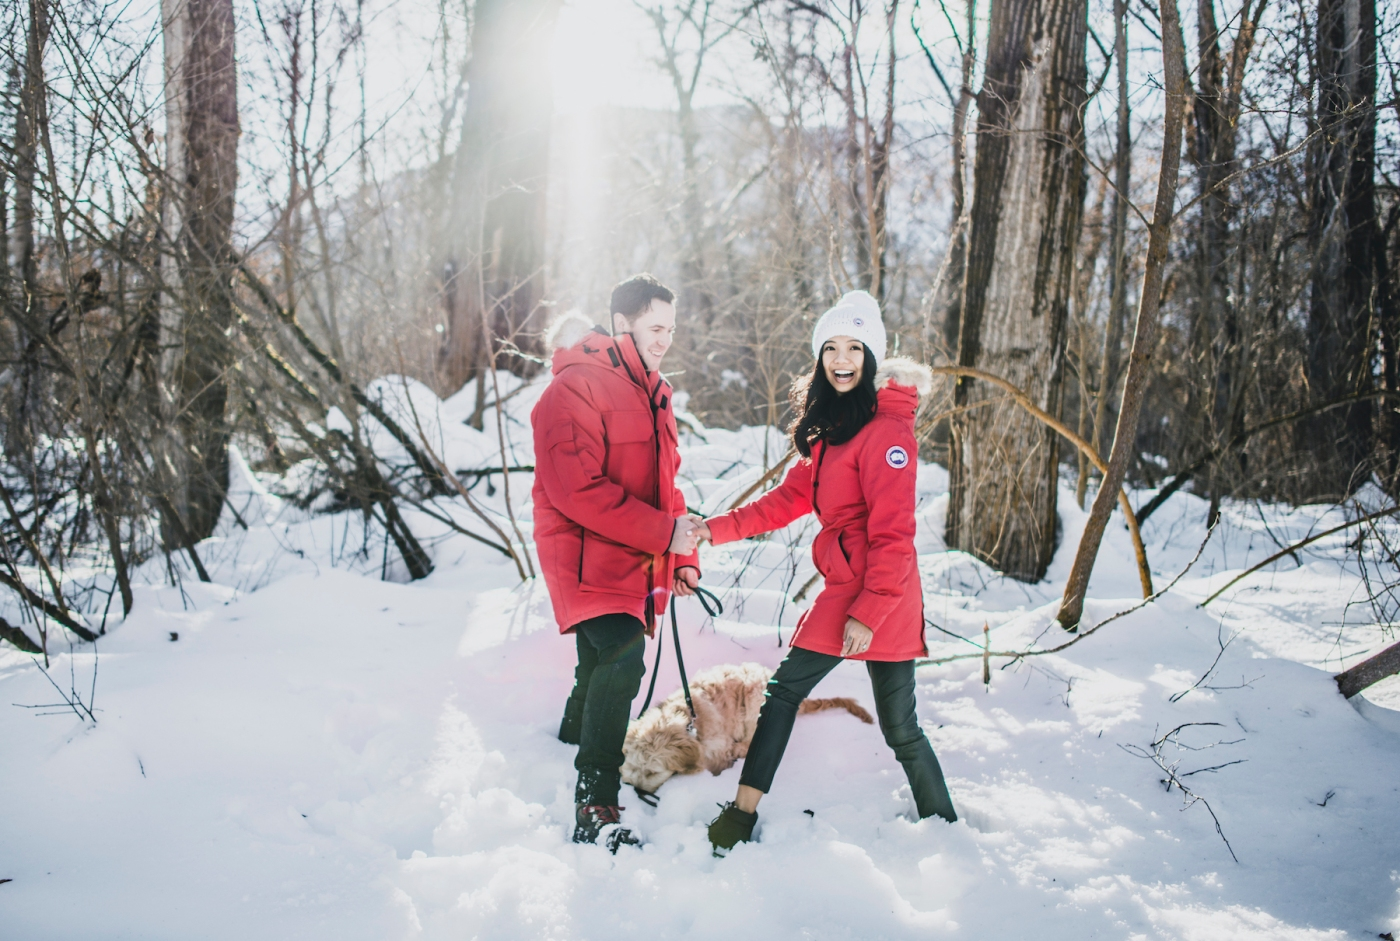 leavenworth_elopement_by_jane_speleers_photography_seattle_photographer_2017_winter_snow_joy_and_jason_rendezvous_ranch_cashmere_leavenworth_nahahum_canyon_all_rights_reserveddsc_9804